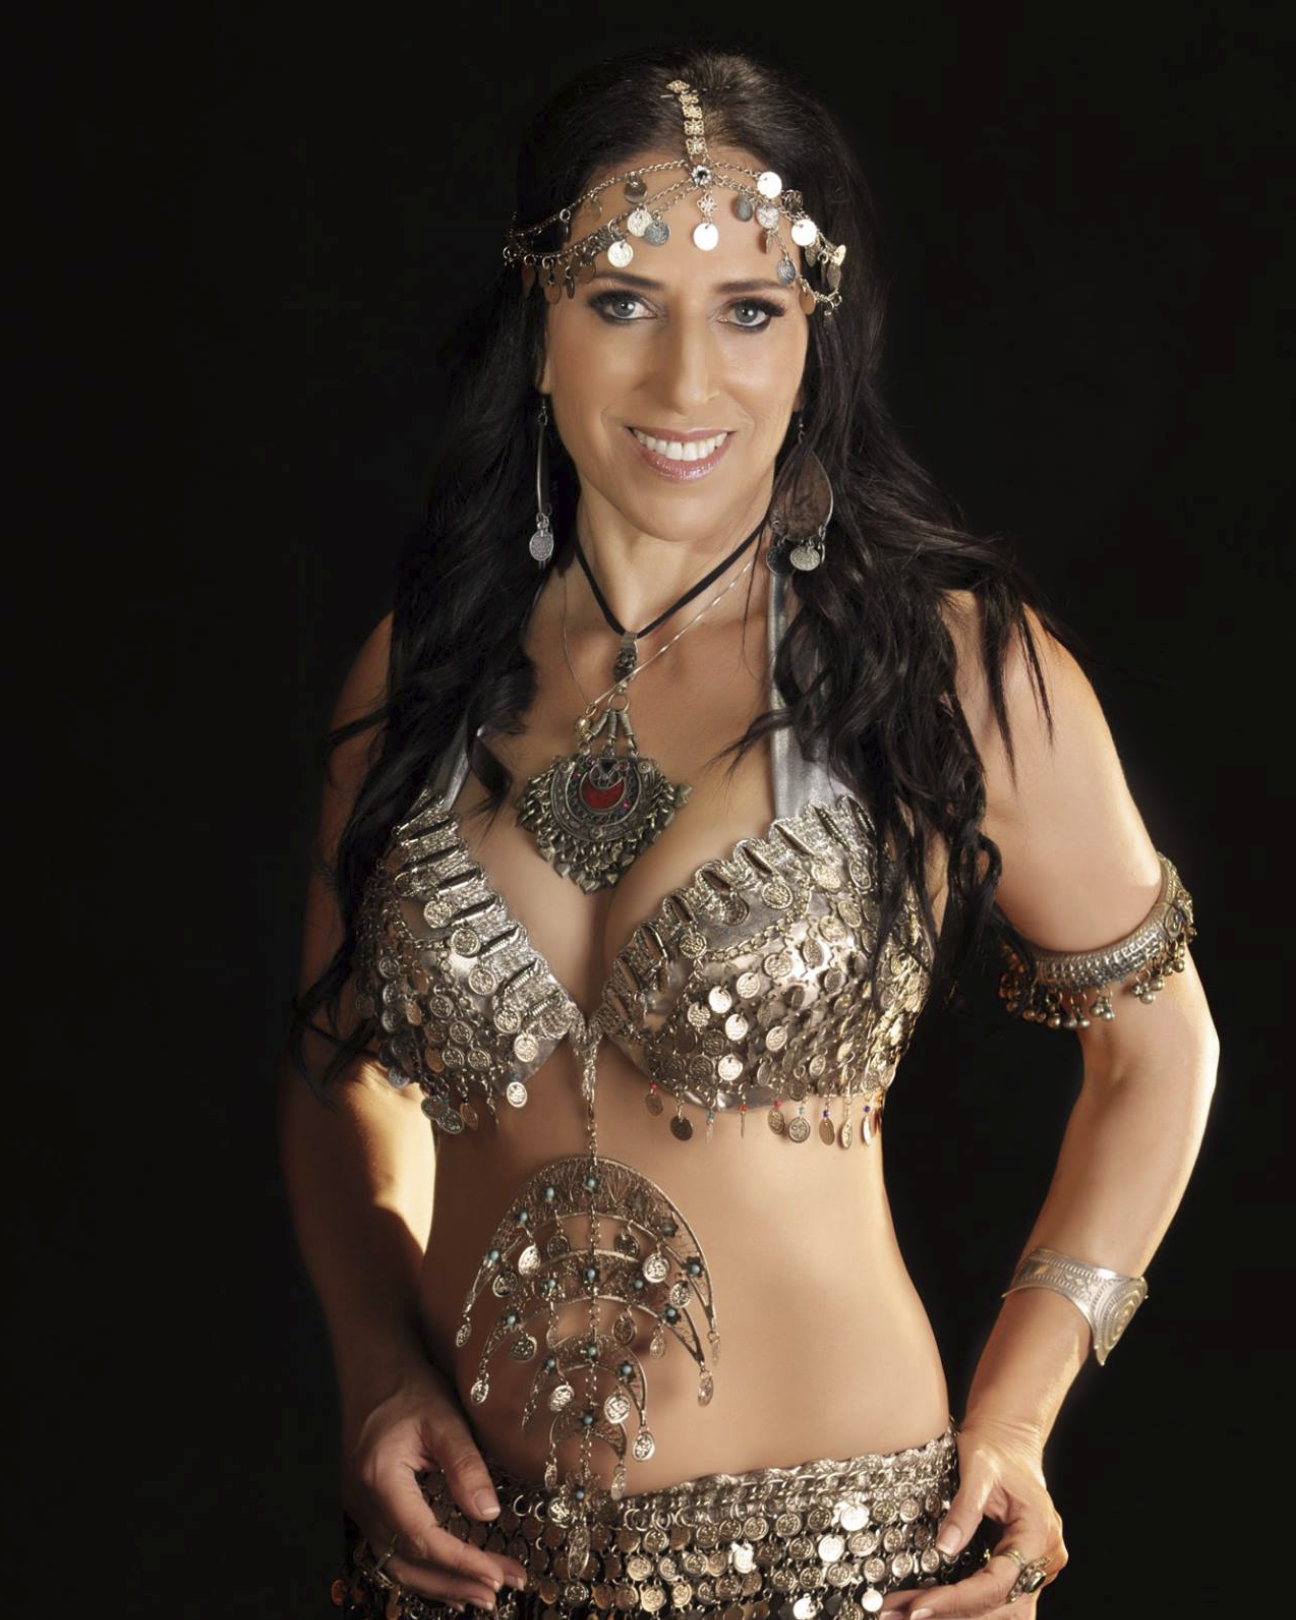 coin-costume Sheherazade Belly Dancing Photos